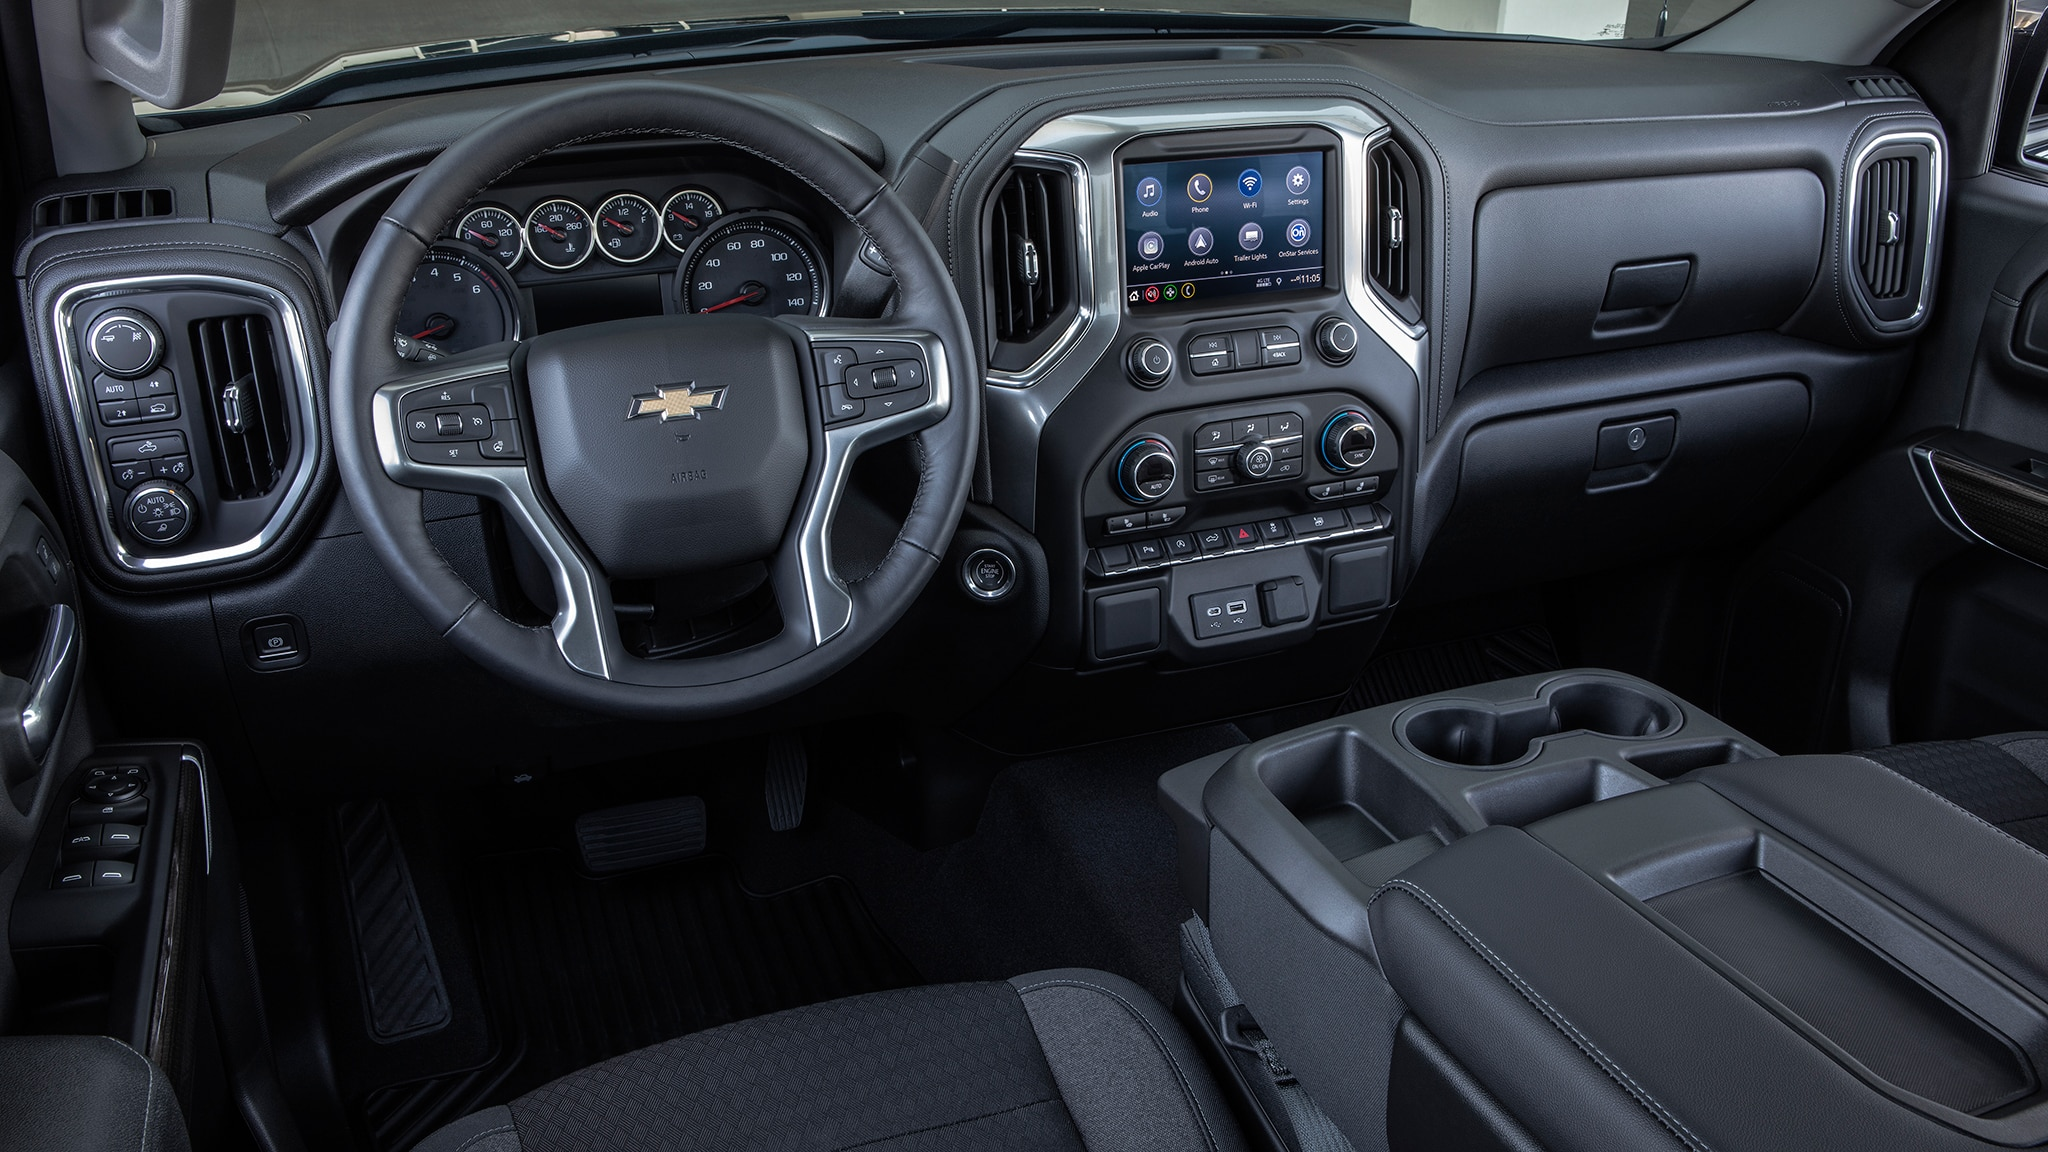 2019 Chevrolet Silverado 4 Cylinder Review Automobile